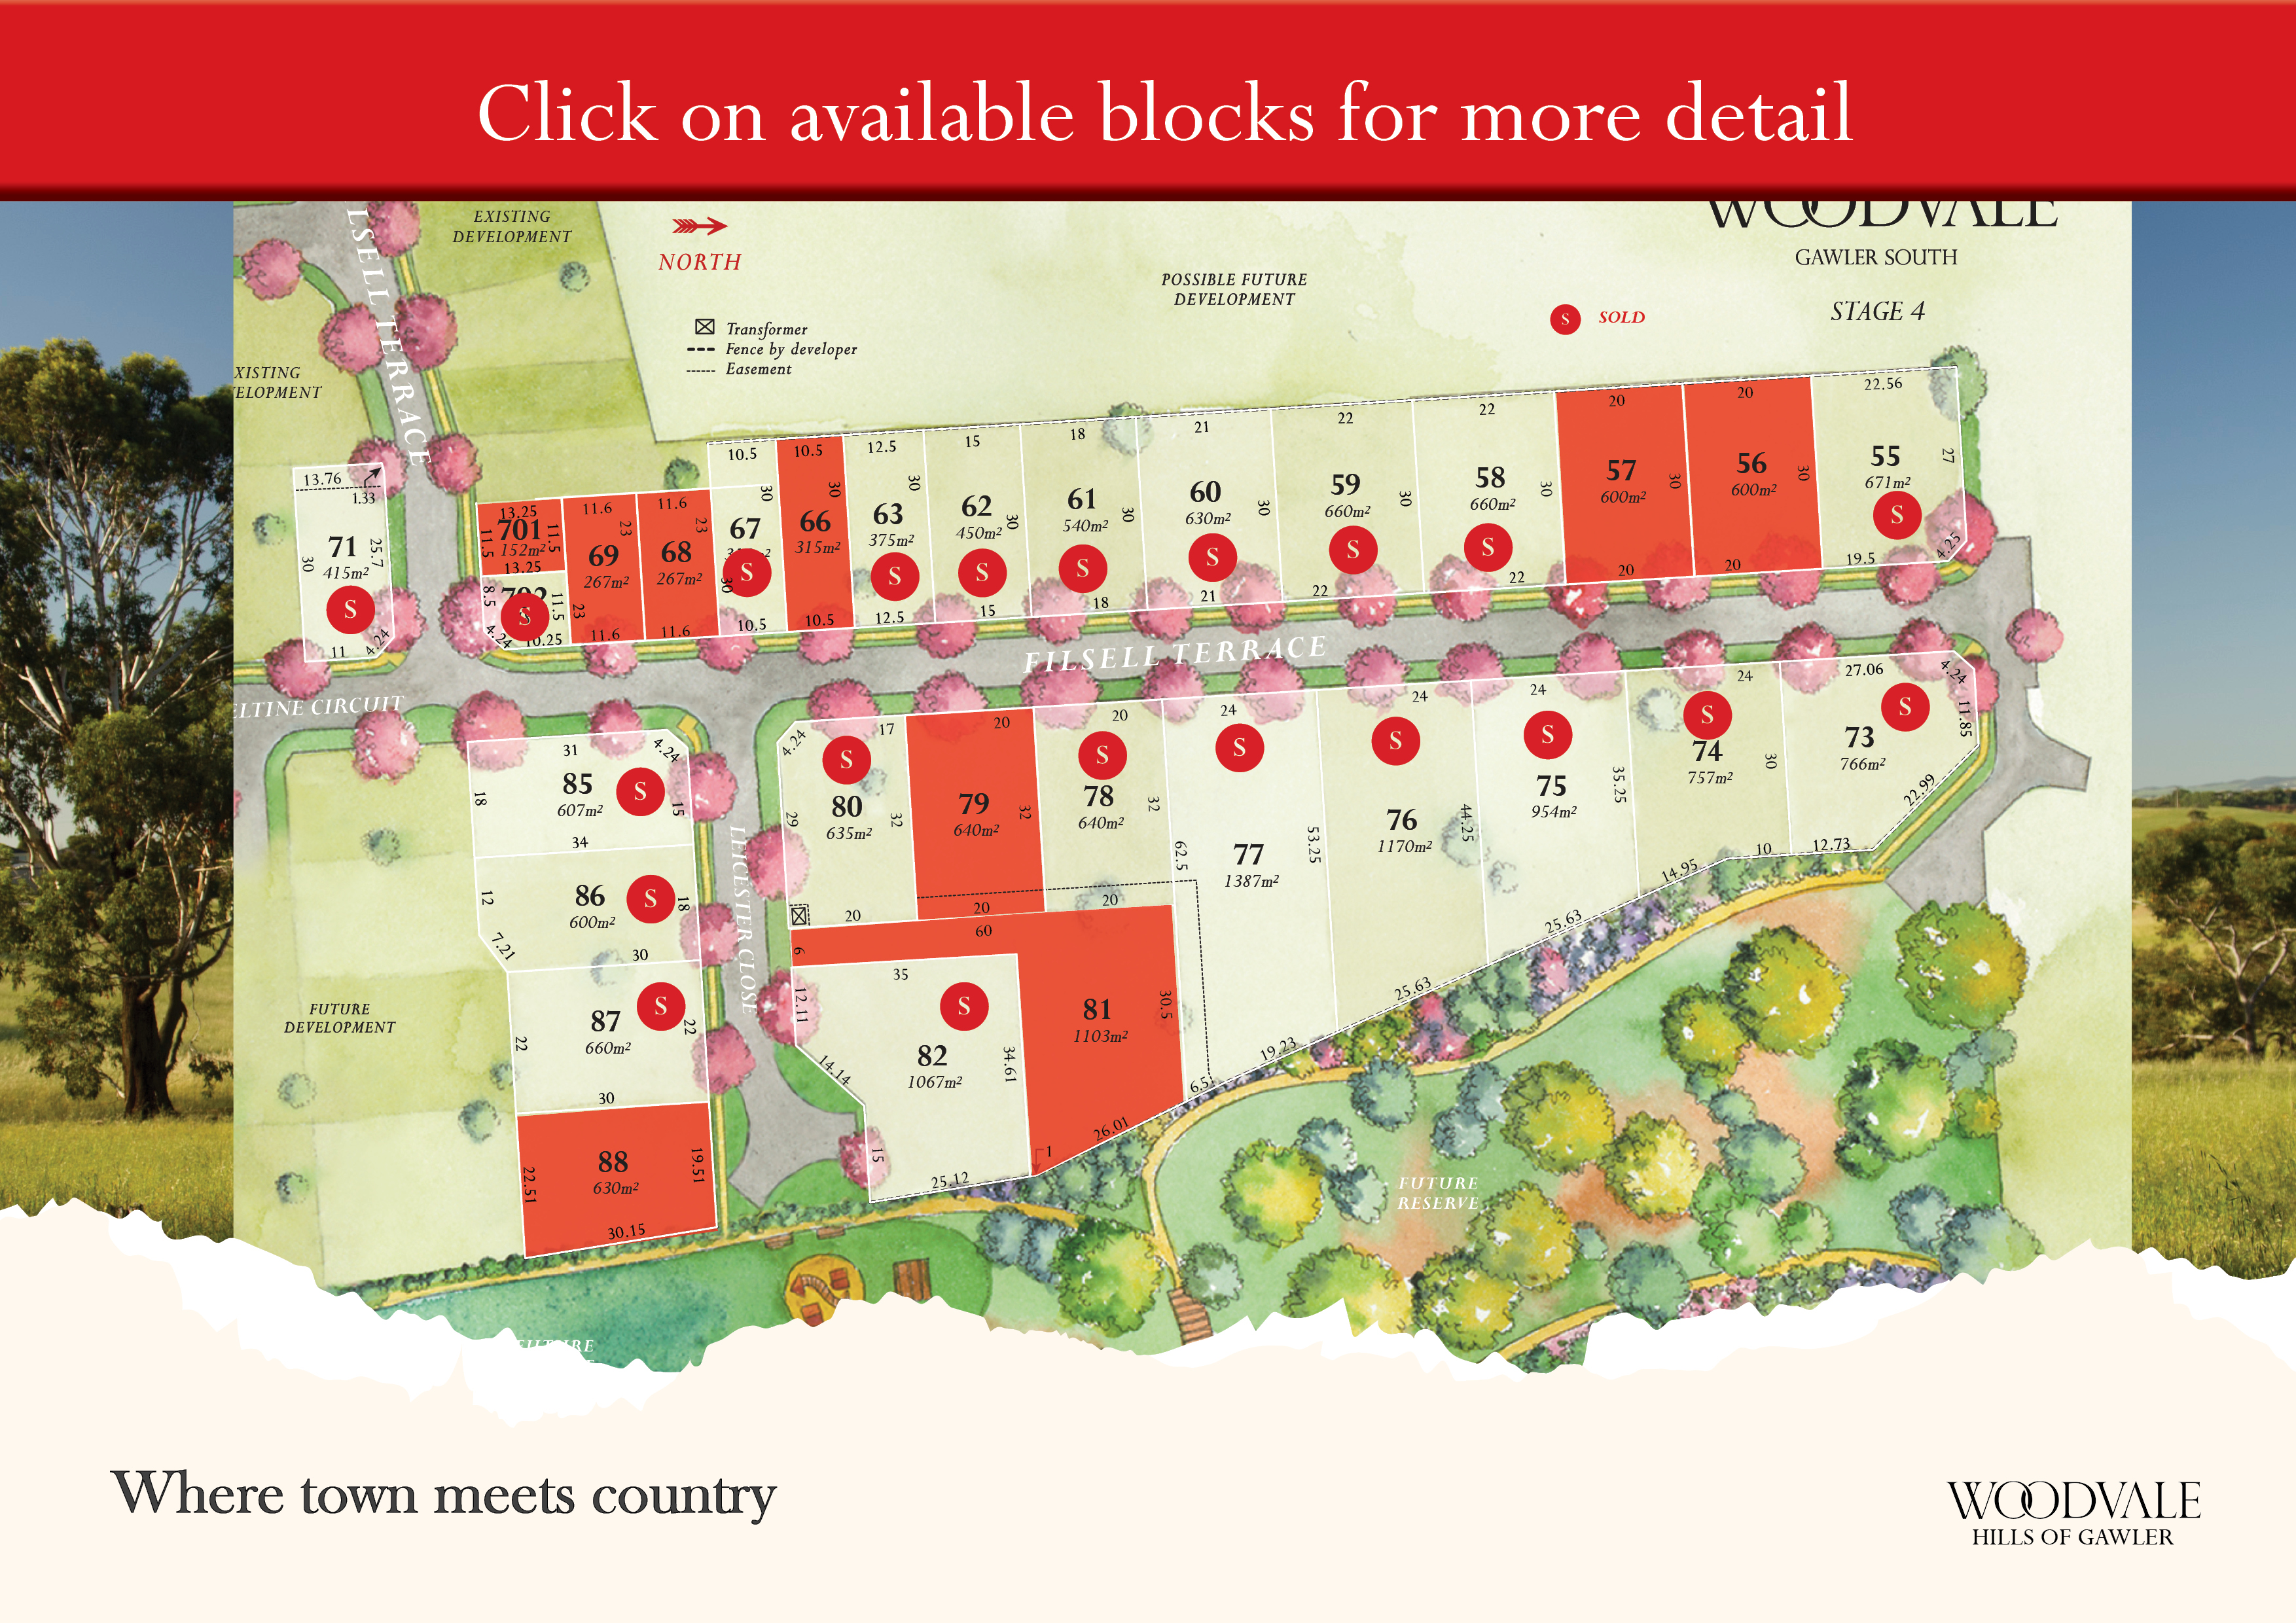 Land for sale at Gawler near Adelaide - Woodvale Stage 4